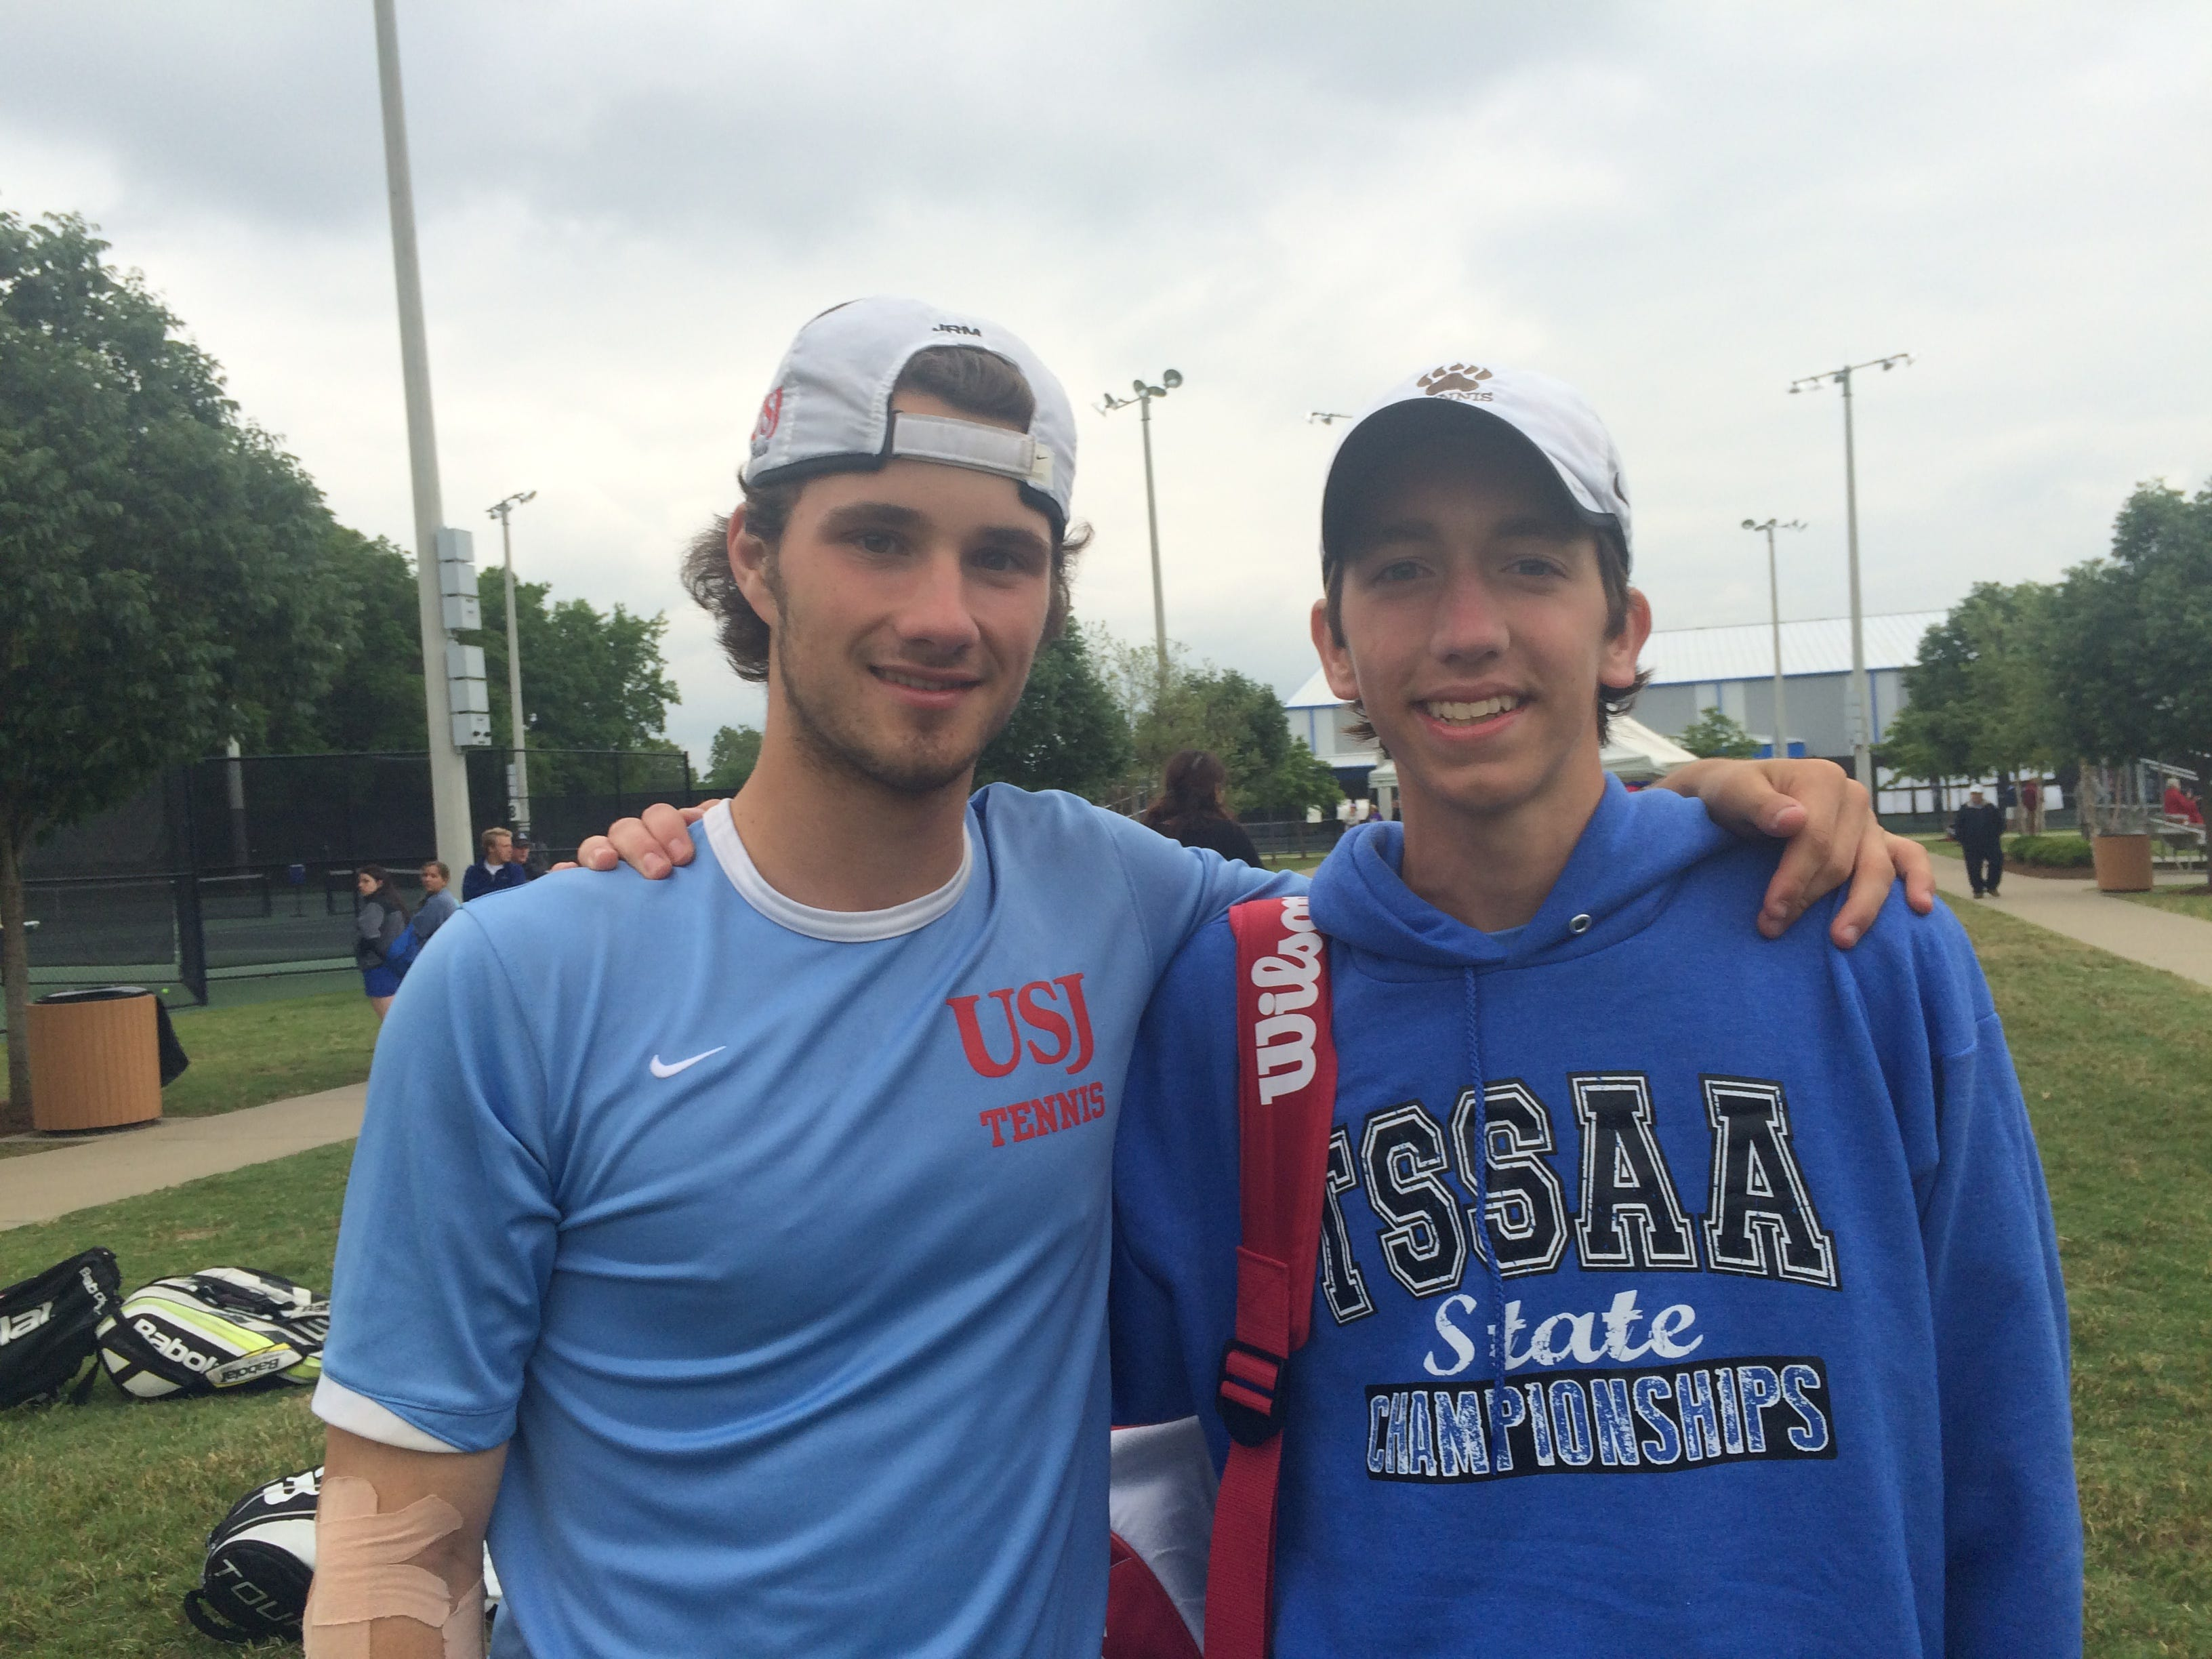 USJ's George Markos (left) and Cade Reason (right) reached the Division II-A state championship doubles match.